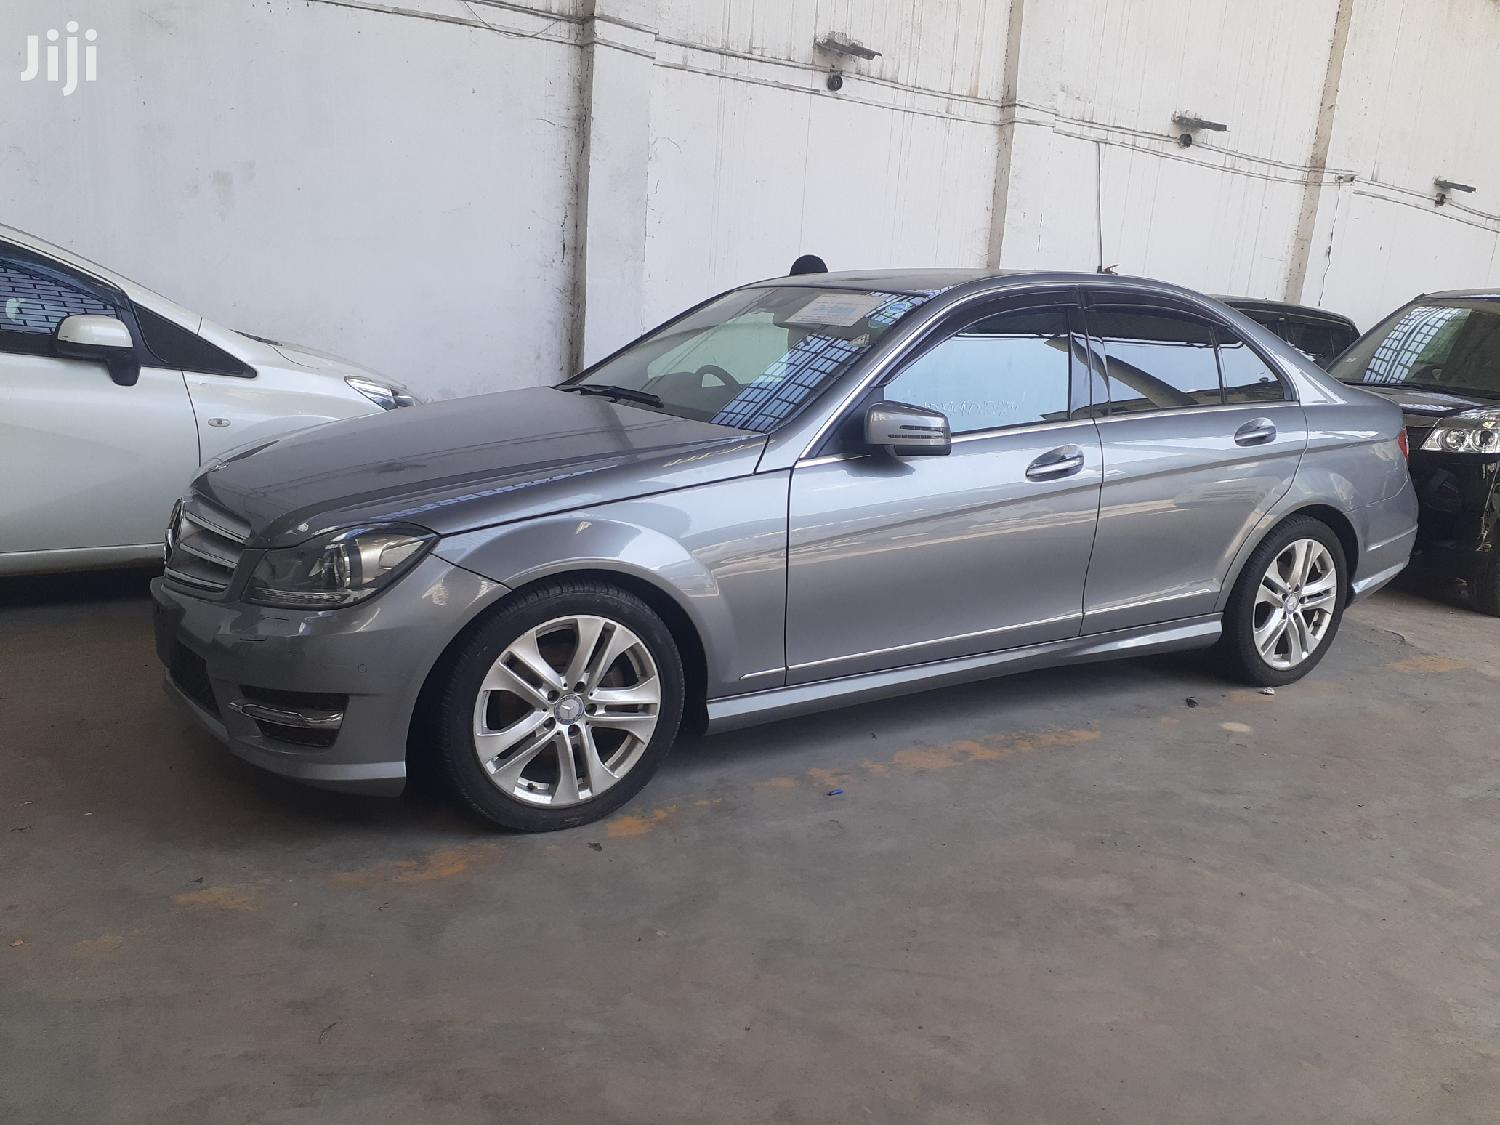 New Mercedes-Benz C200 2013 Silver | Cars for sale in Shimanzi/Ganjoni, Mombasa, Kenya